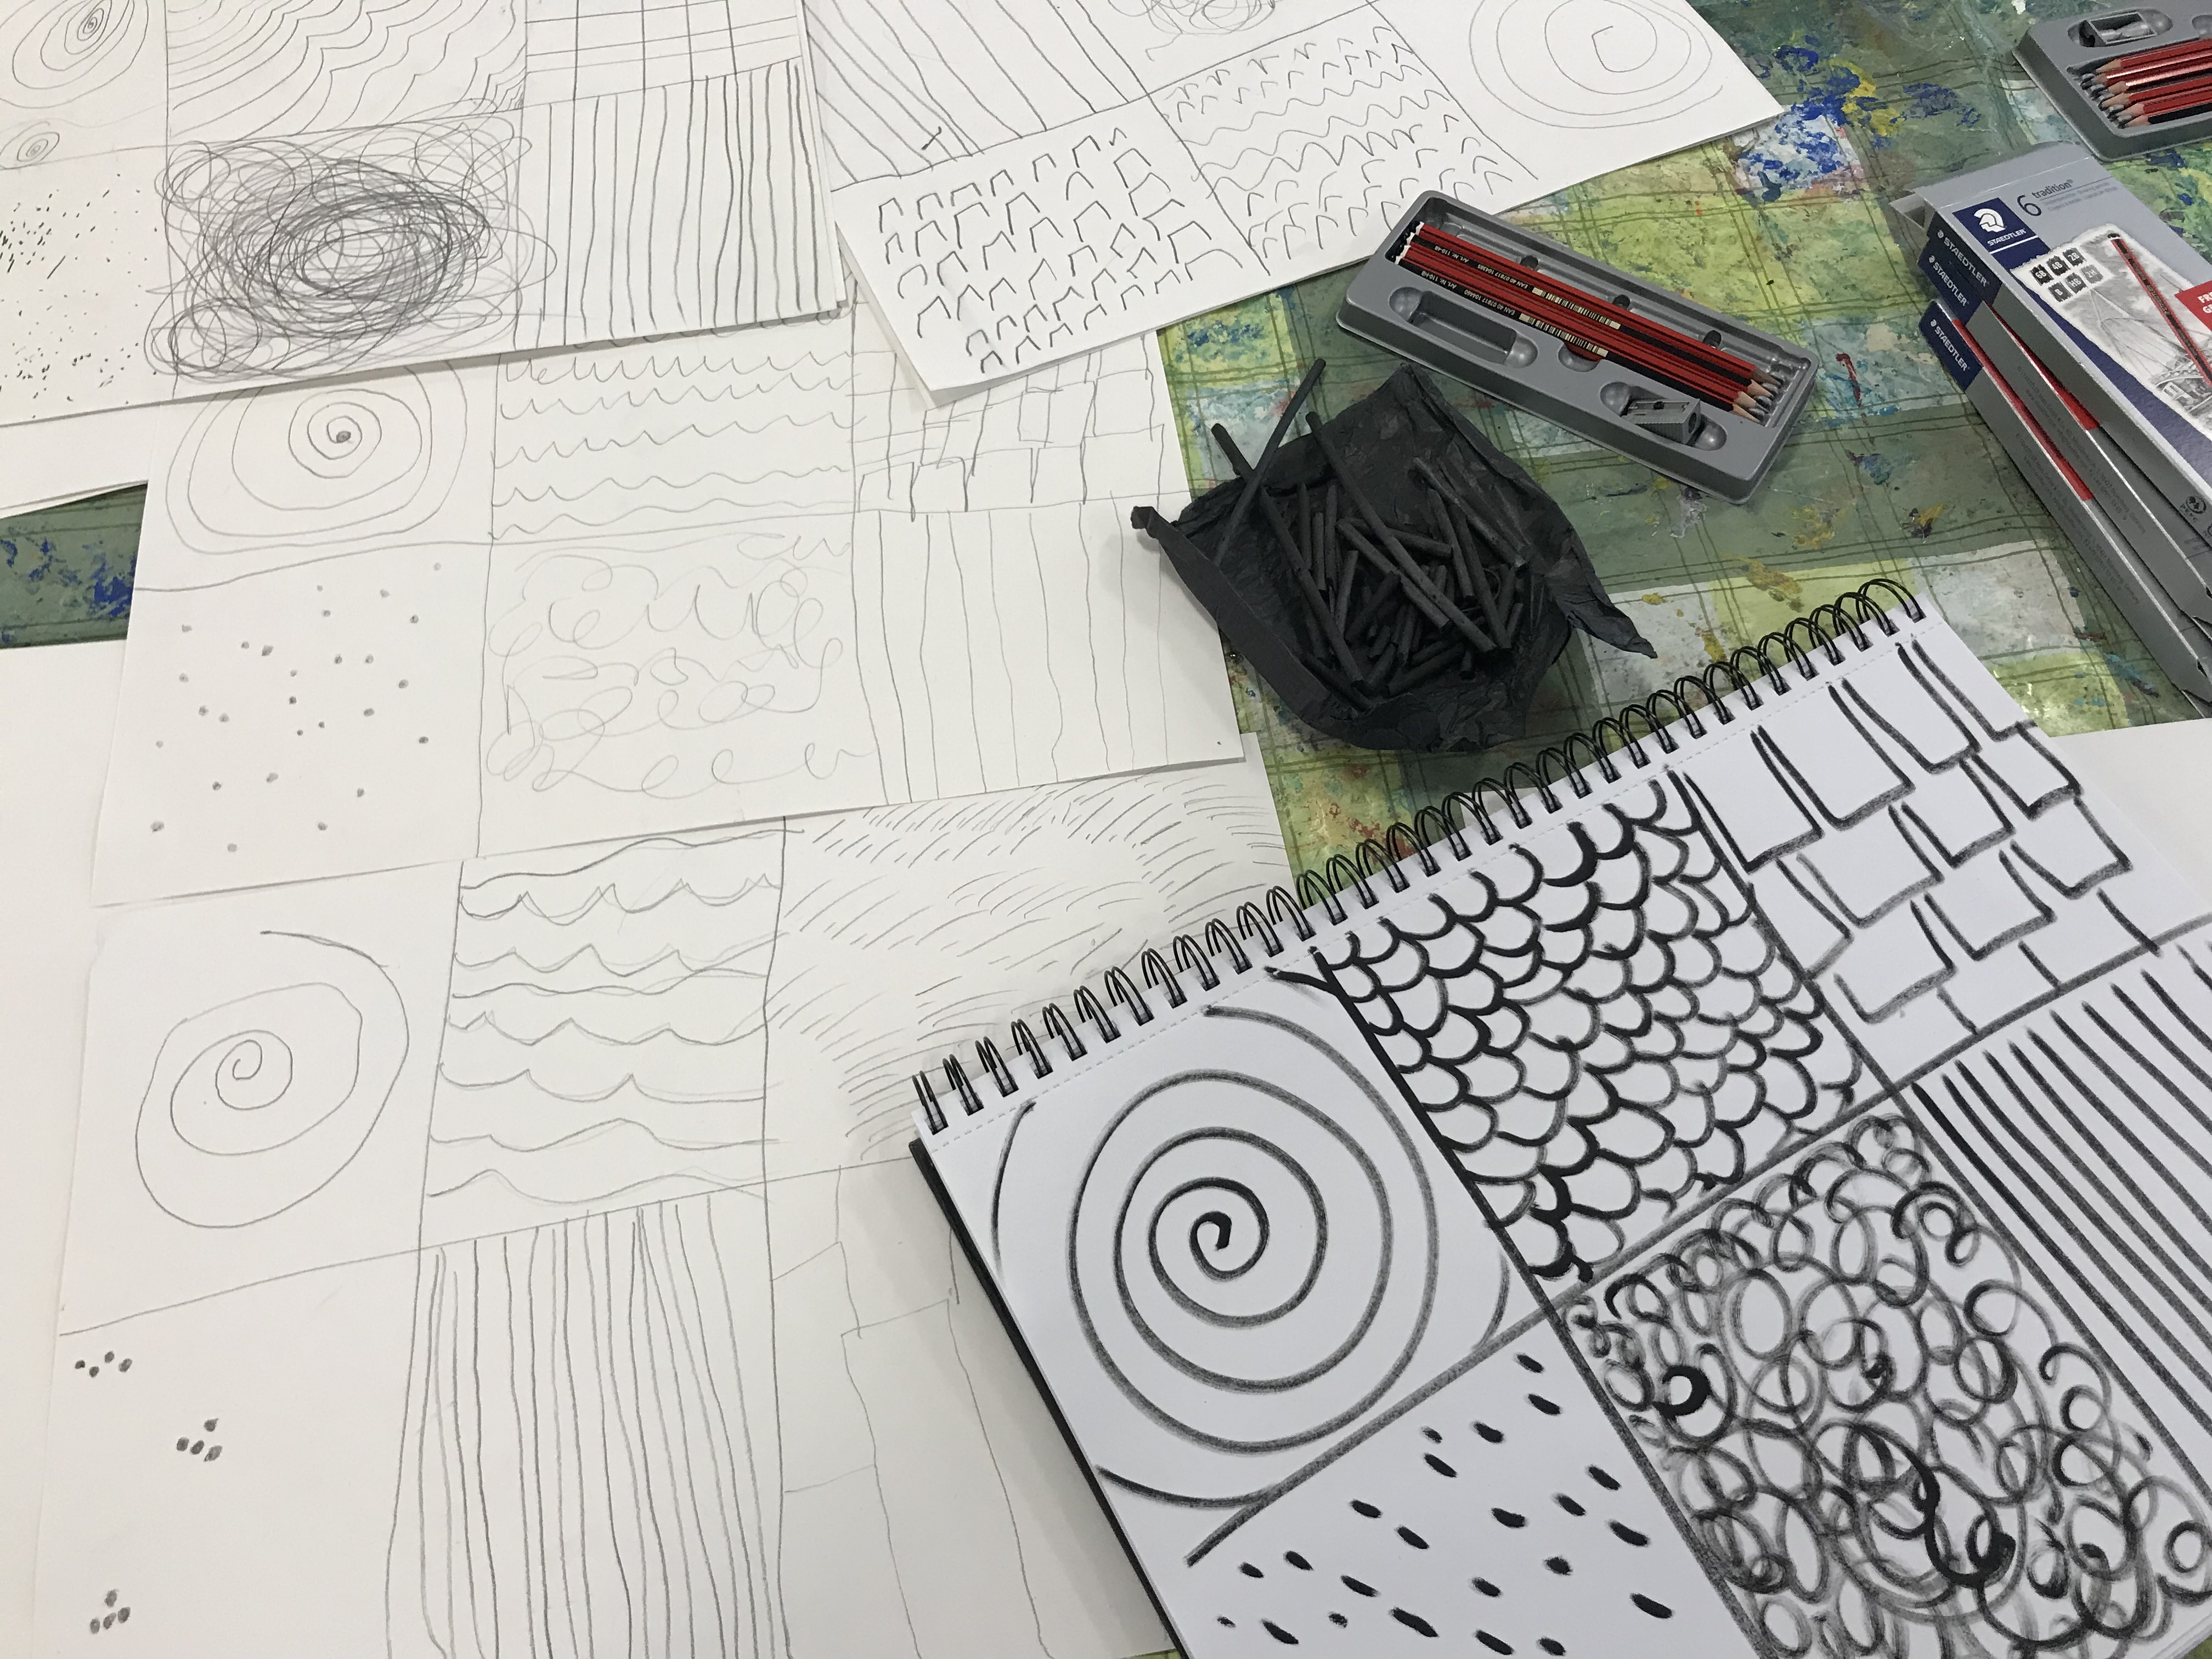 drawing and markmaking workshop